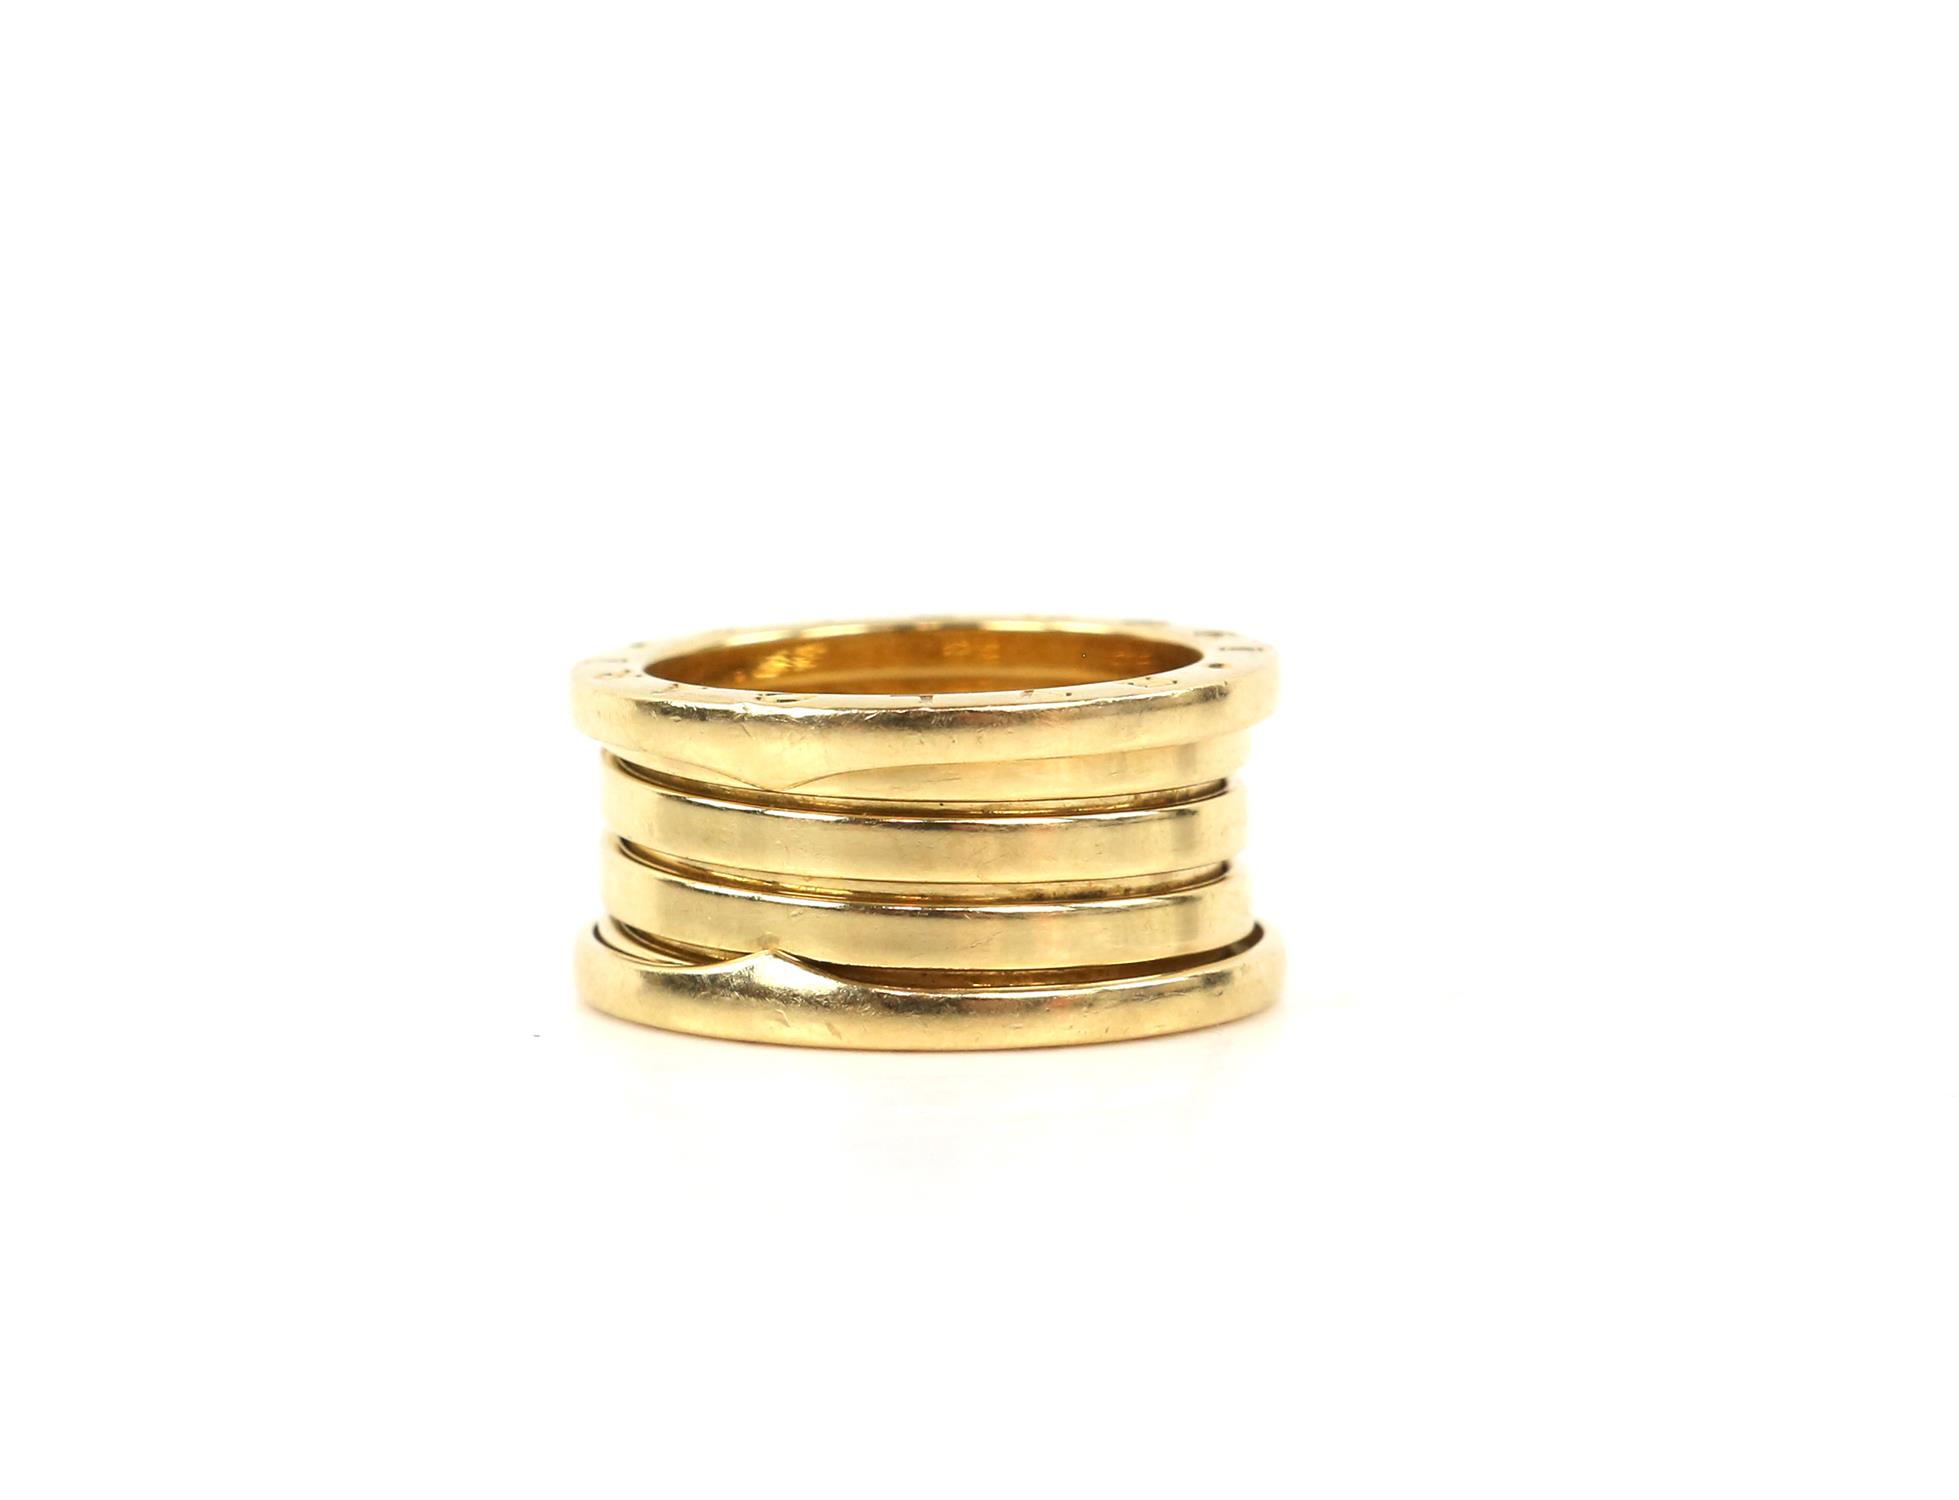 Bvlgari B.Zero1 four band ring, inside band marked Made in Italy 750, with Bvlgari makers mark, - Image 5 of 6